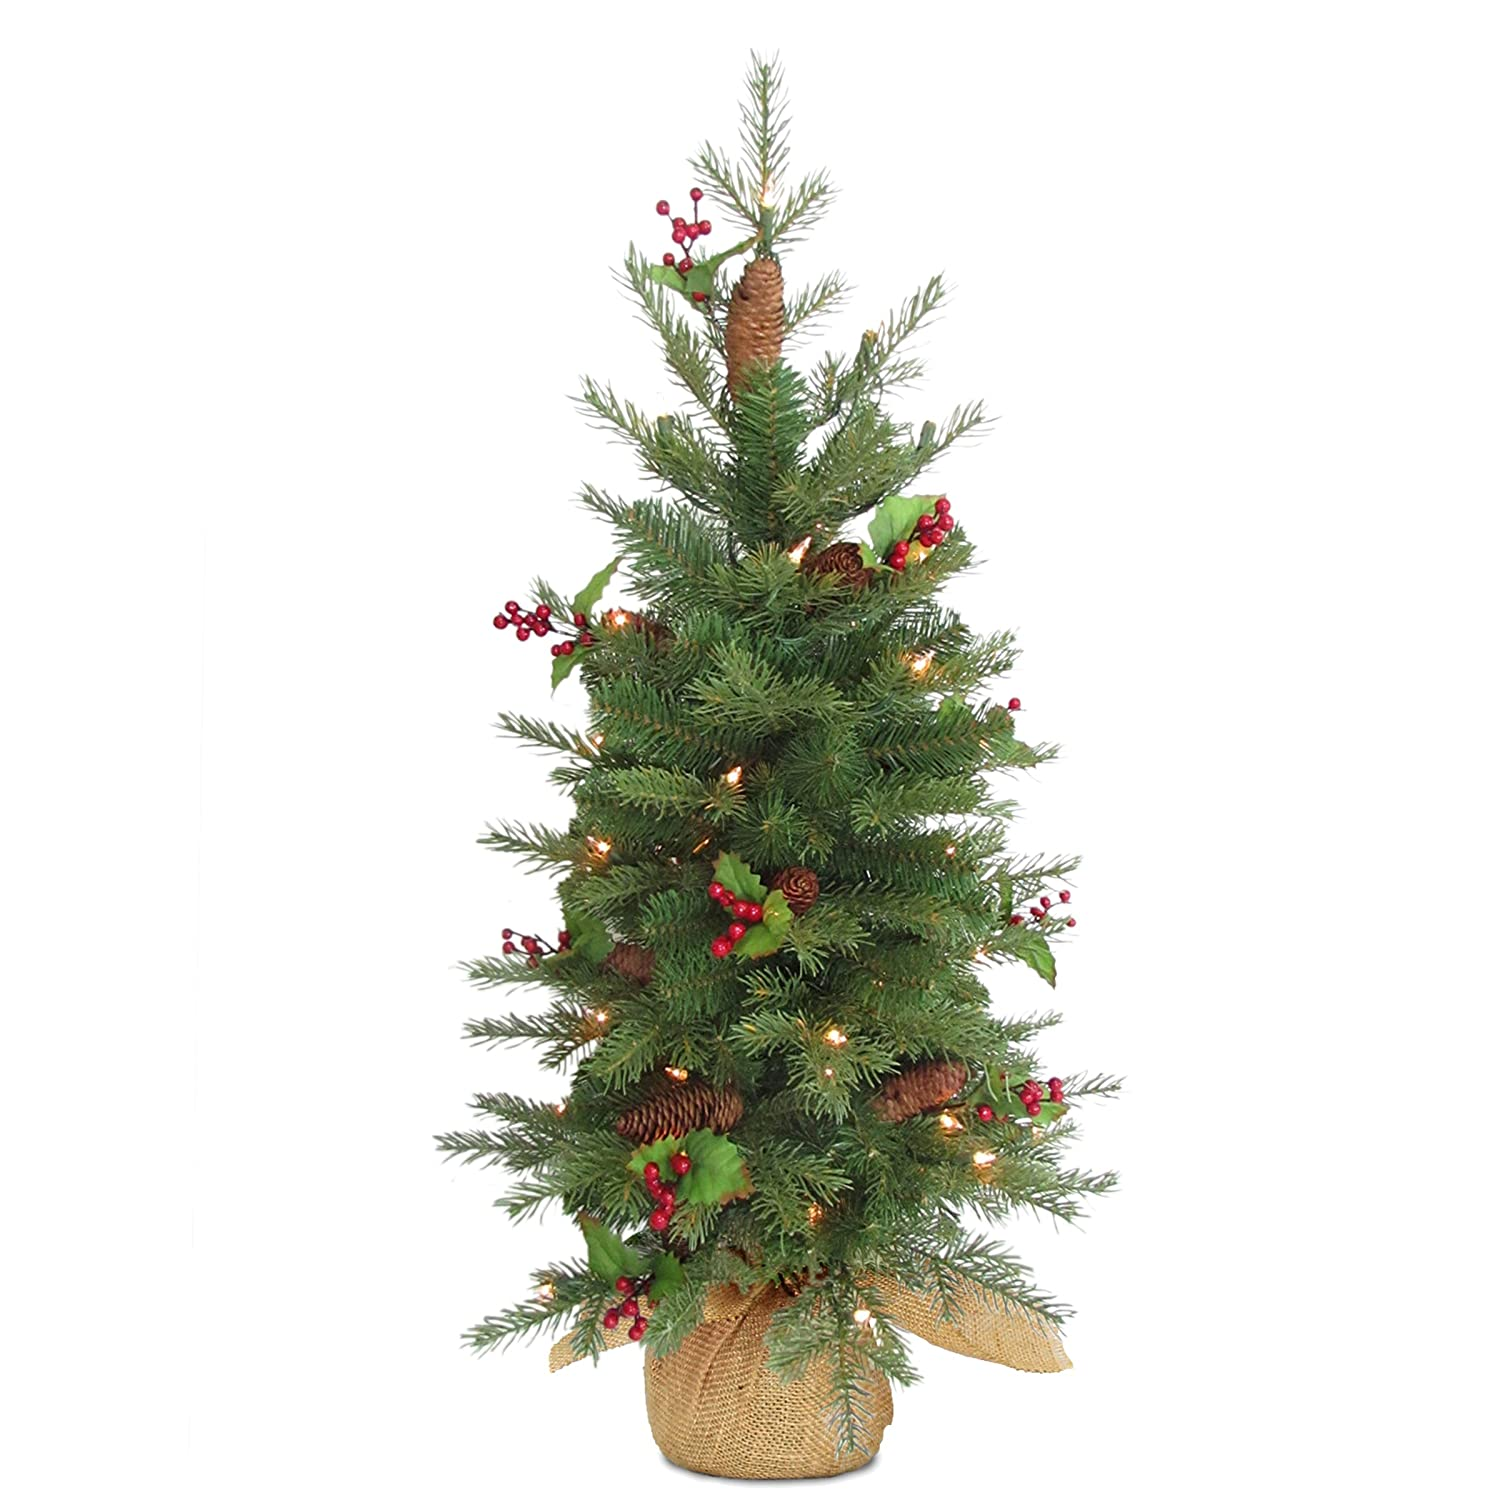 Red Berries and 100 Battery Operated Warm White LED Lights PENS1-355-30-B1 National Tree 3 Feel Real Nordic Spruce Tree with Cones